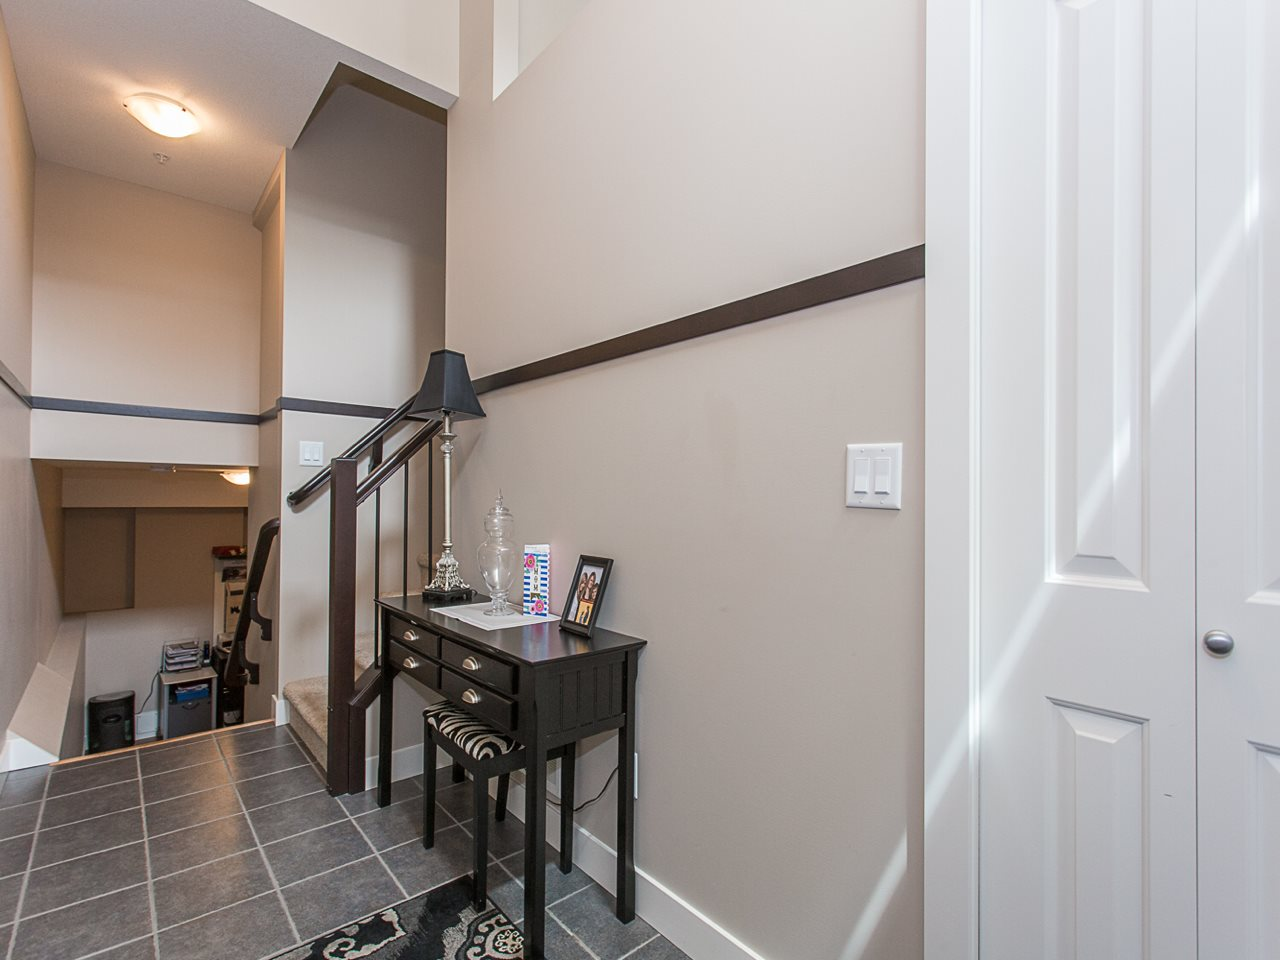 "Photo 9: 59 11252 COTTONWOOD Drive in Maple Ridge: Cottonwood MR Townhouse for sale in ""COTTONWOOD RIDGE"" : MLS(r) # R2179258"